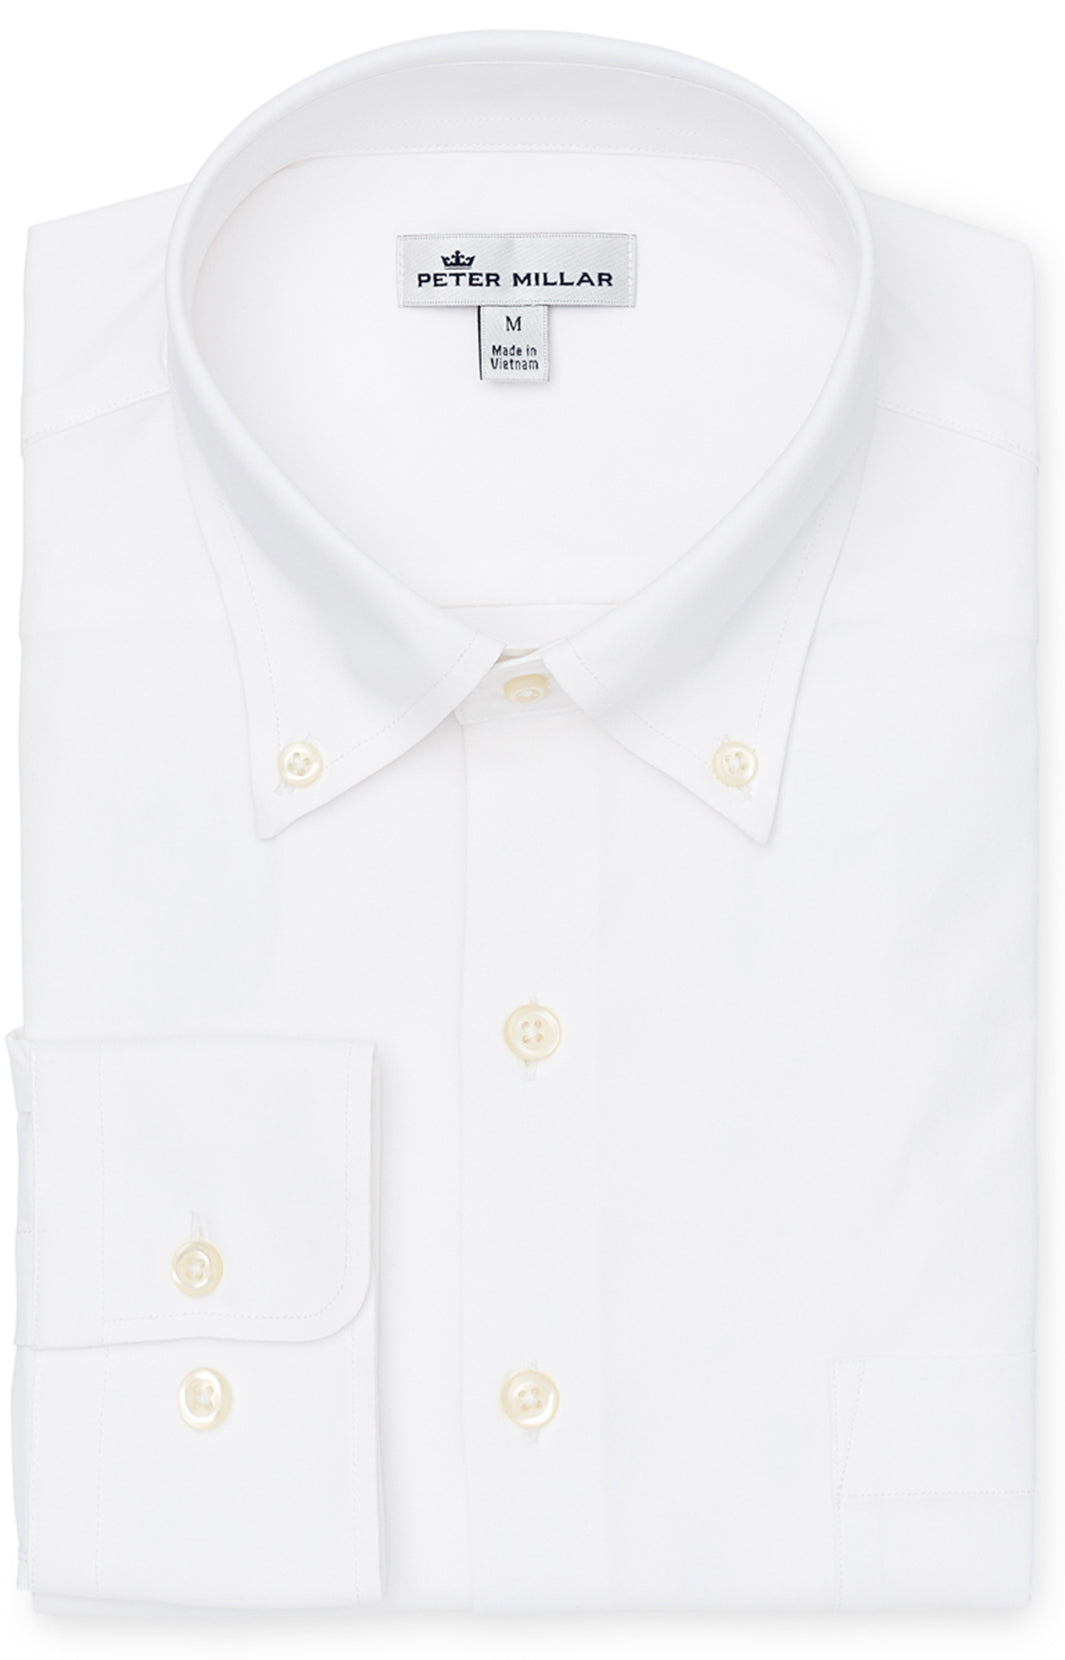 peter millar performane shirt, white shirt by peter millar, white shirt for men by peter millar